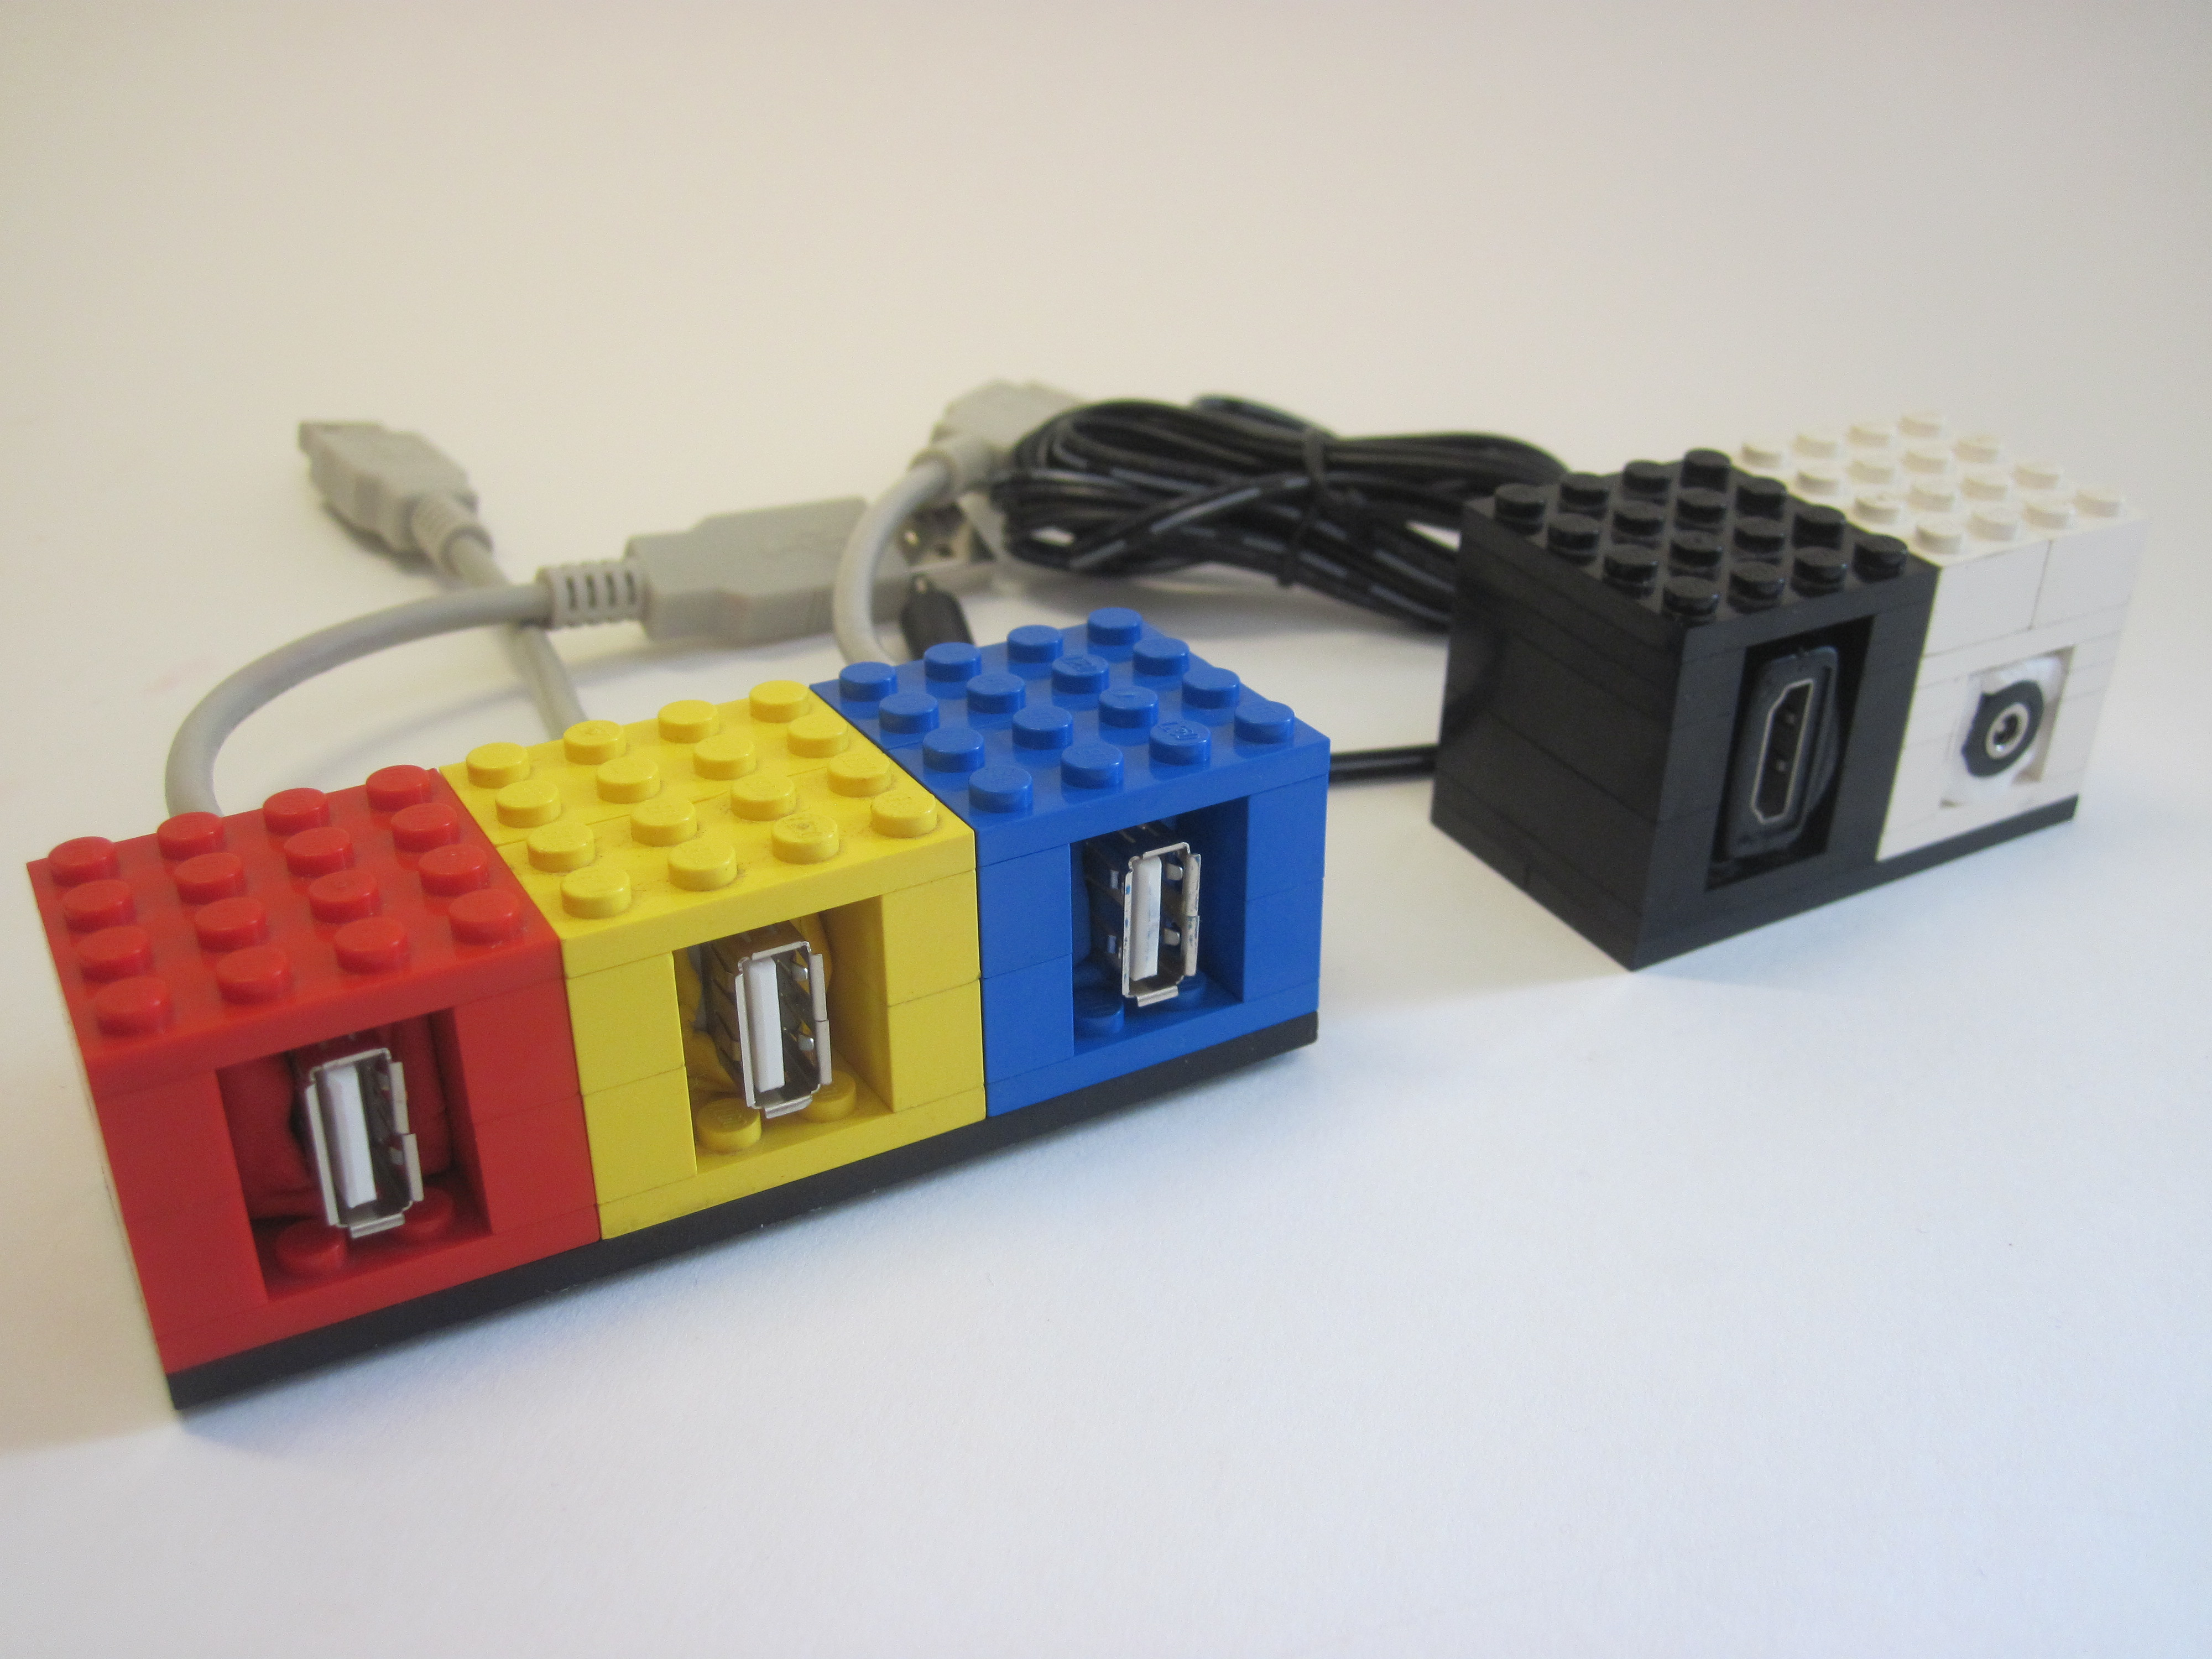 Picture of Lego + Sugru Panel Mount Connectors (with RetroPie Case As Example)